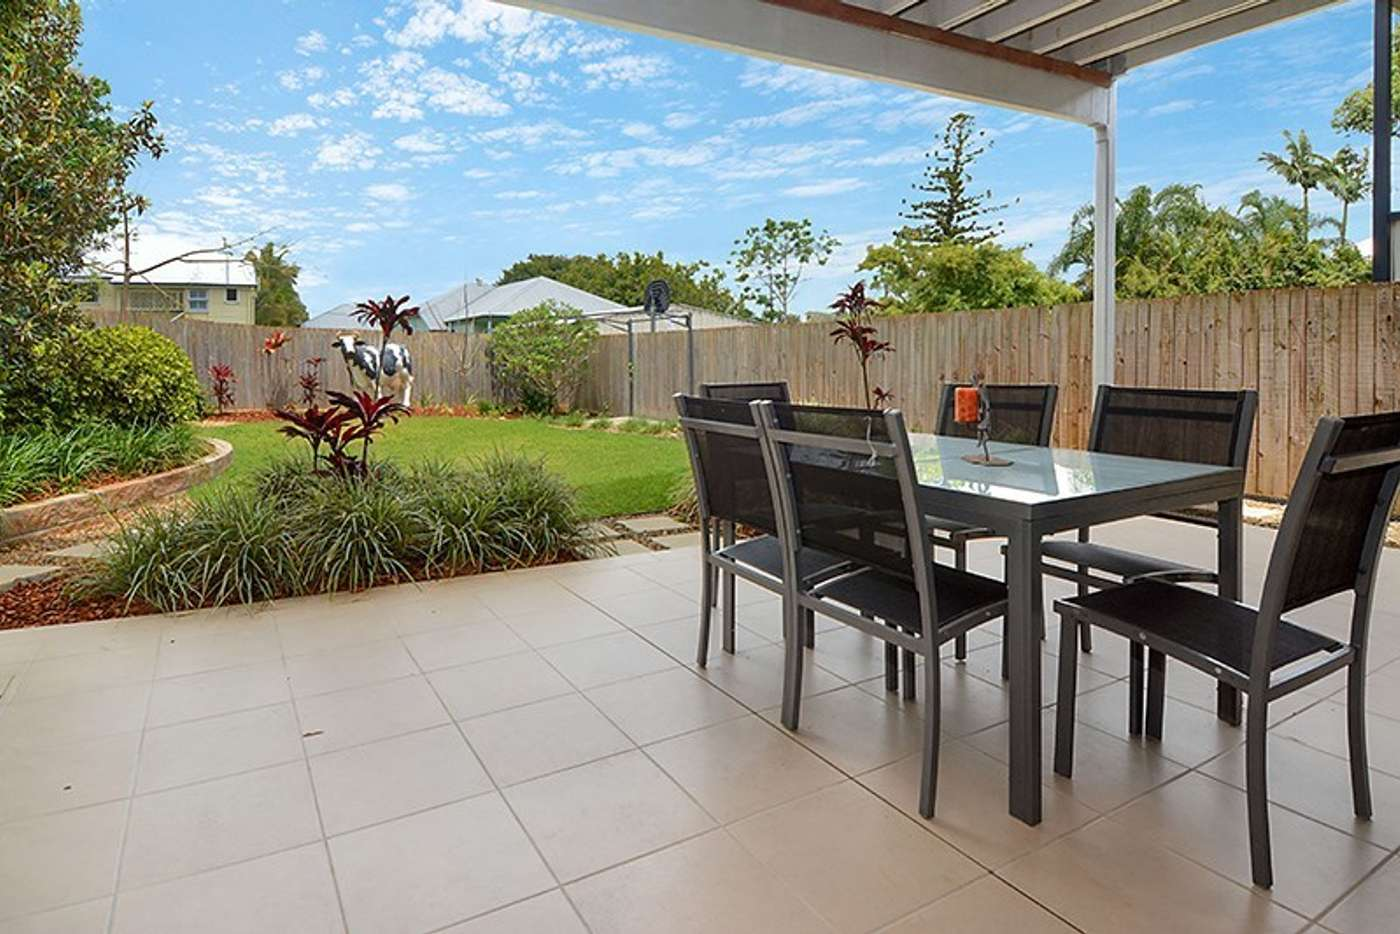 Sixth view of Homely house listing, 8 South Street, Newmarket QLD 4051